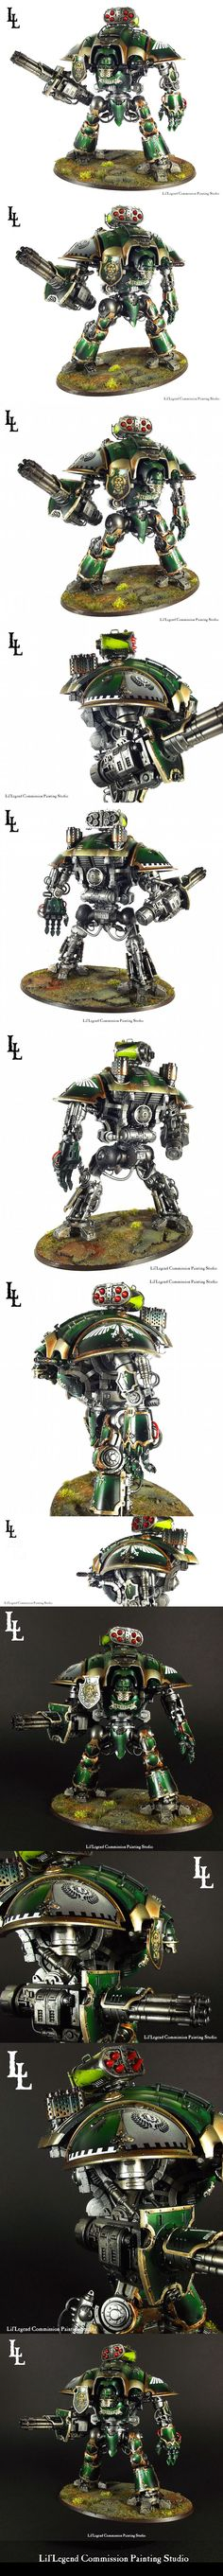 Imperial Knight Warden Glycon the Last Knight of Lys